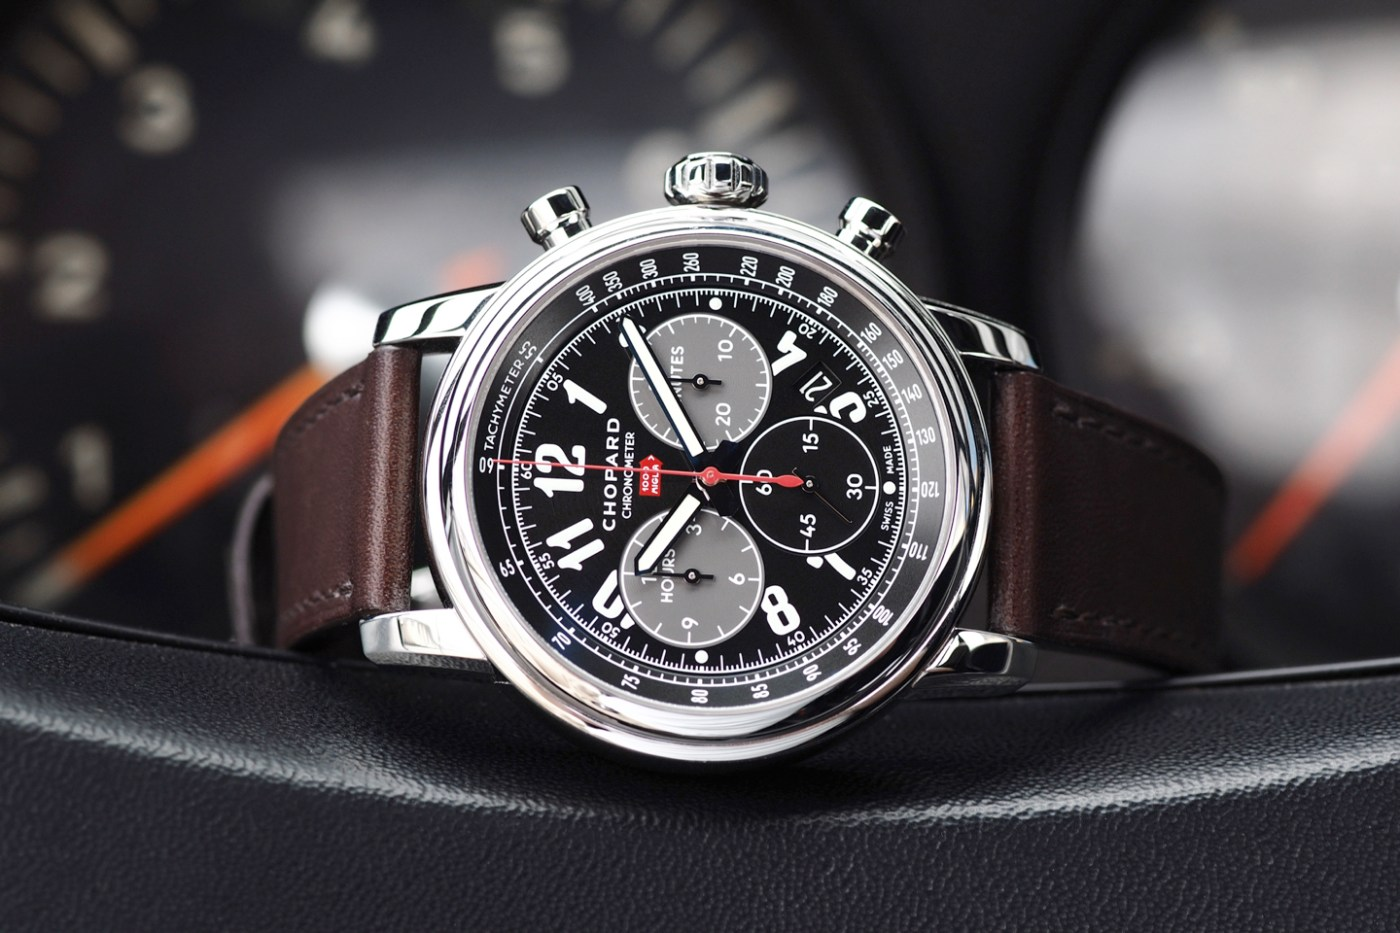 Chopard Mille Miglia 2016 XL Race Edition Chronograph in 1965 Shelby Cobra